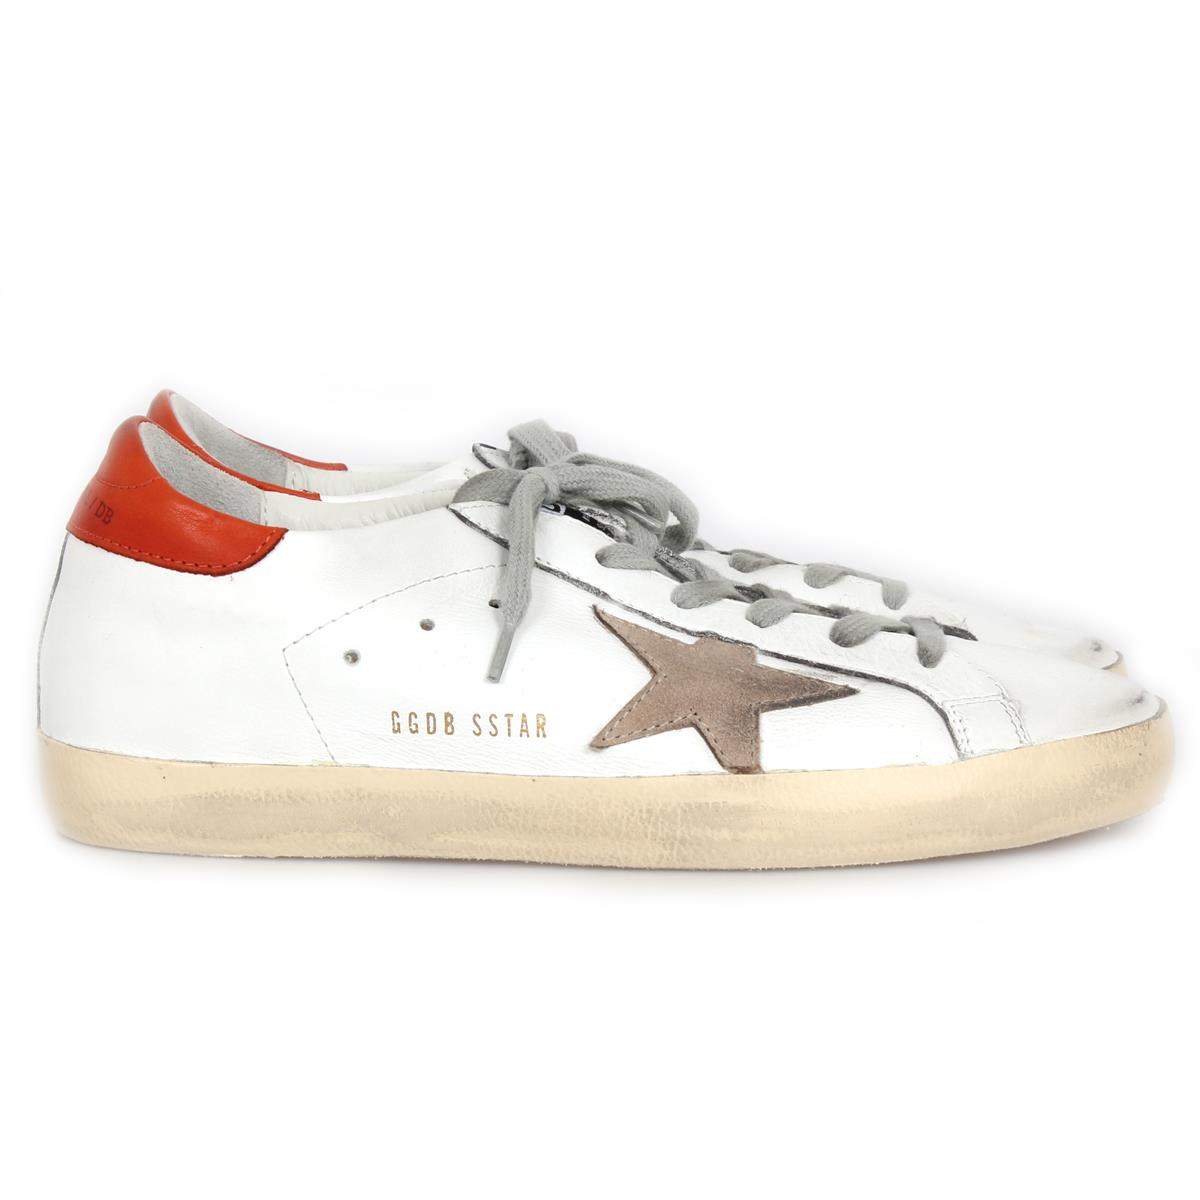 Golden Goose sneaker superstar white brick red. Zoom